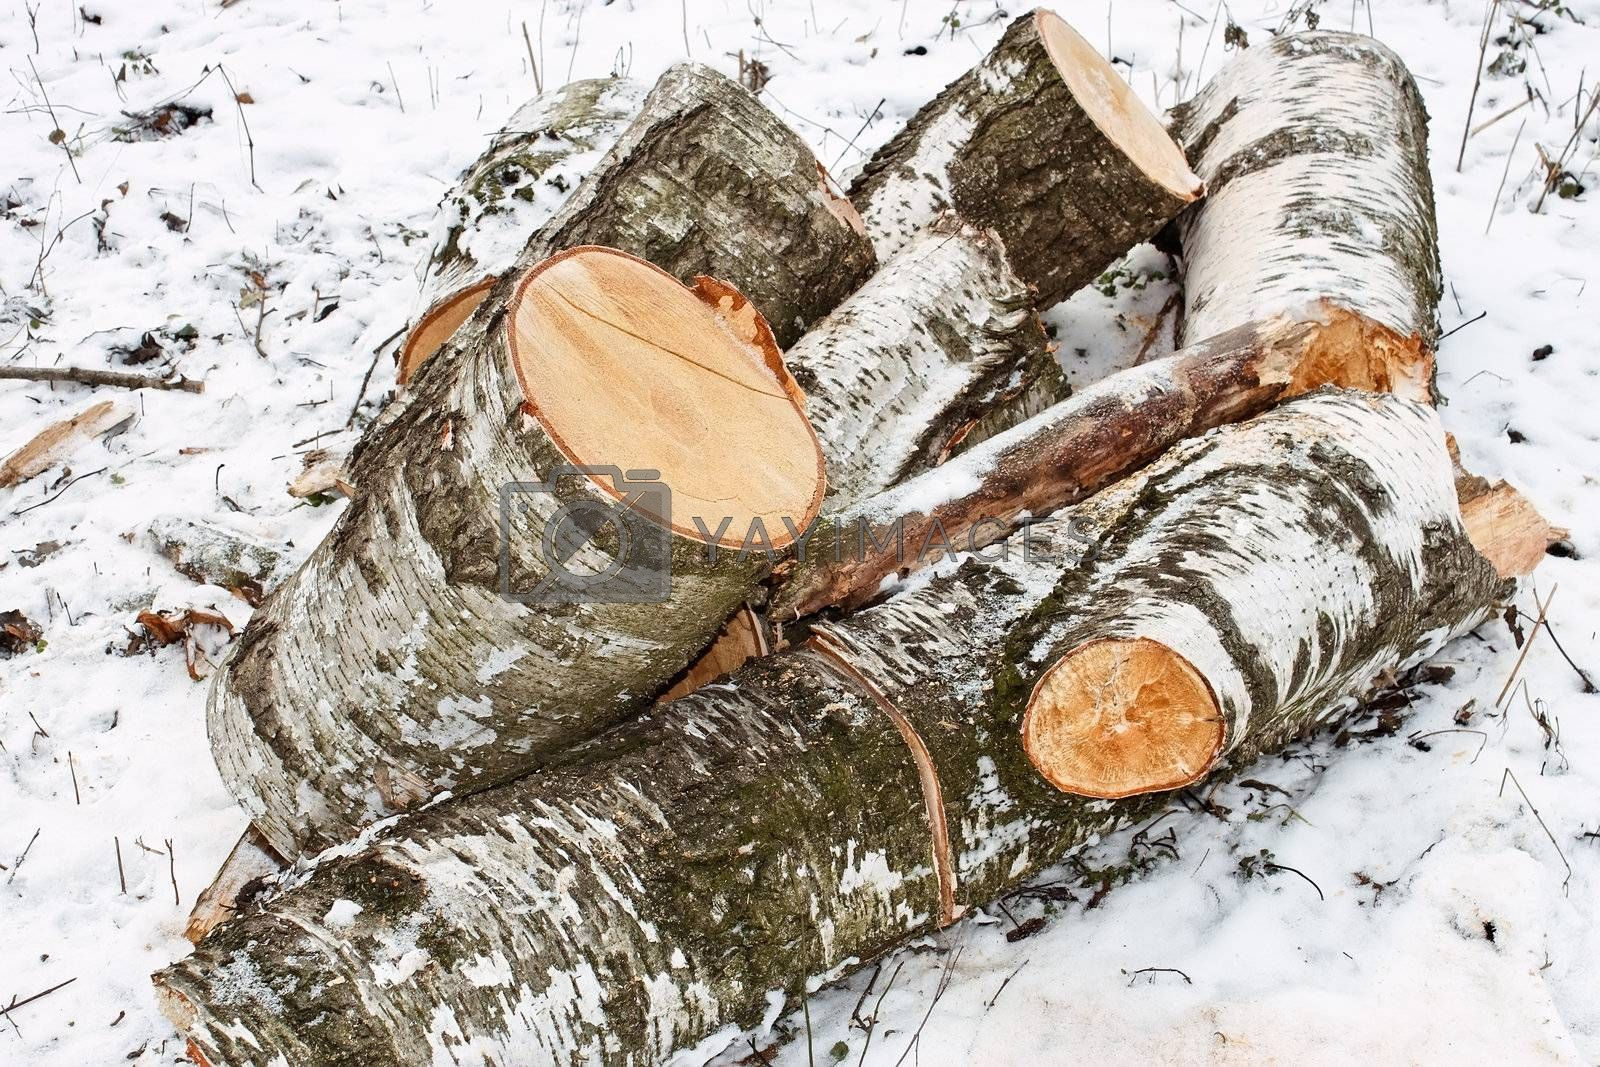 Royalty free image of Birch logs on the snow by qiiip